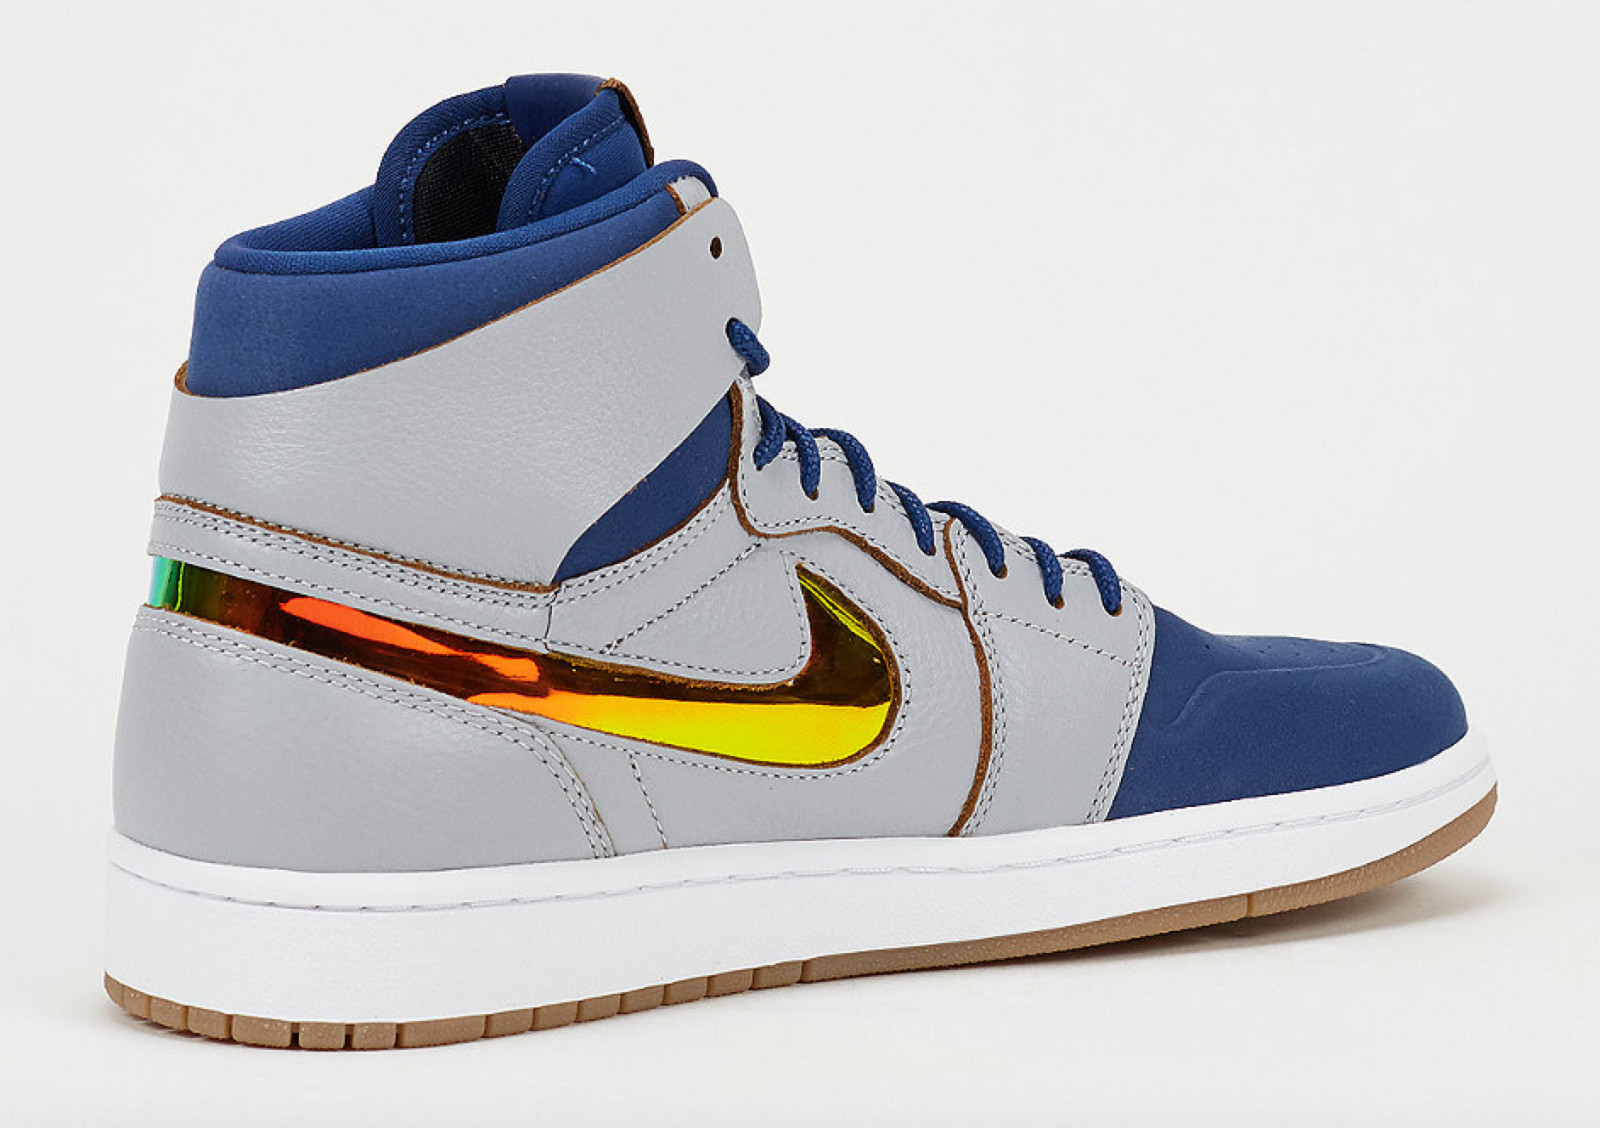 new product c5e07 32890 Air Jordan 1 Nouveau Dunk From Above